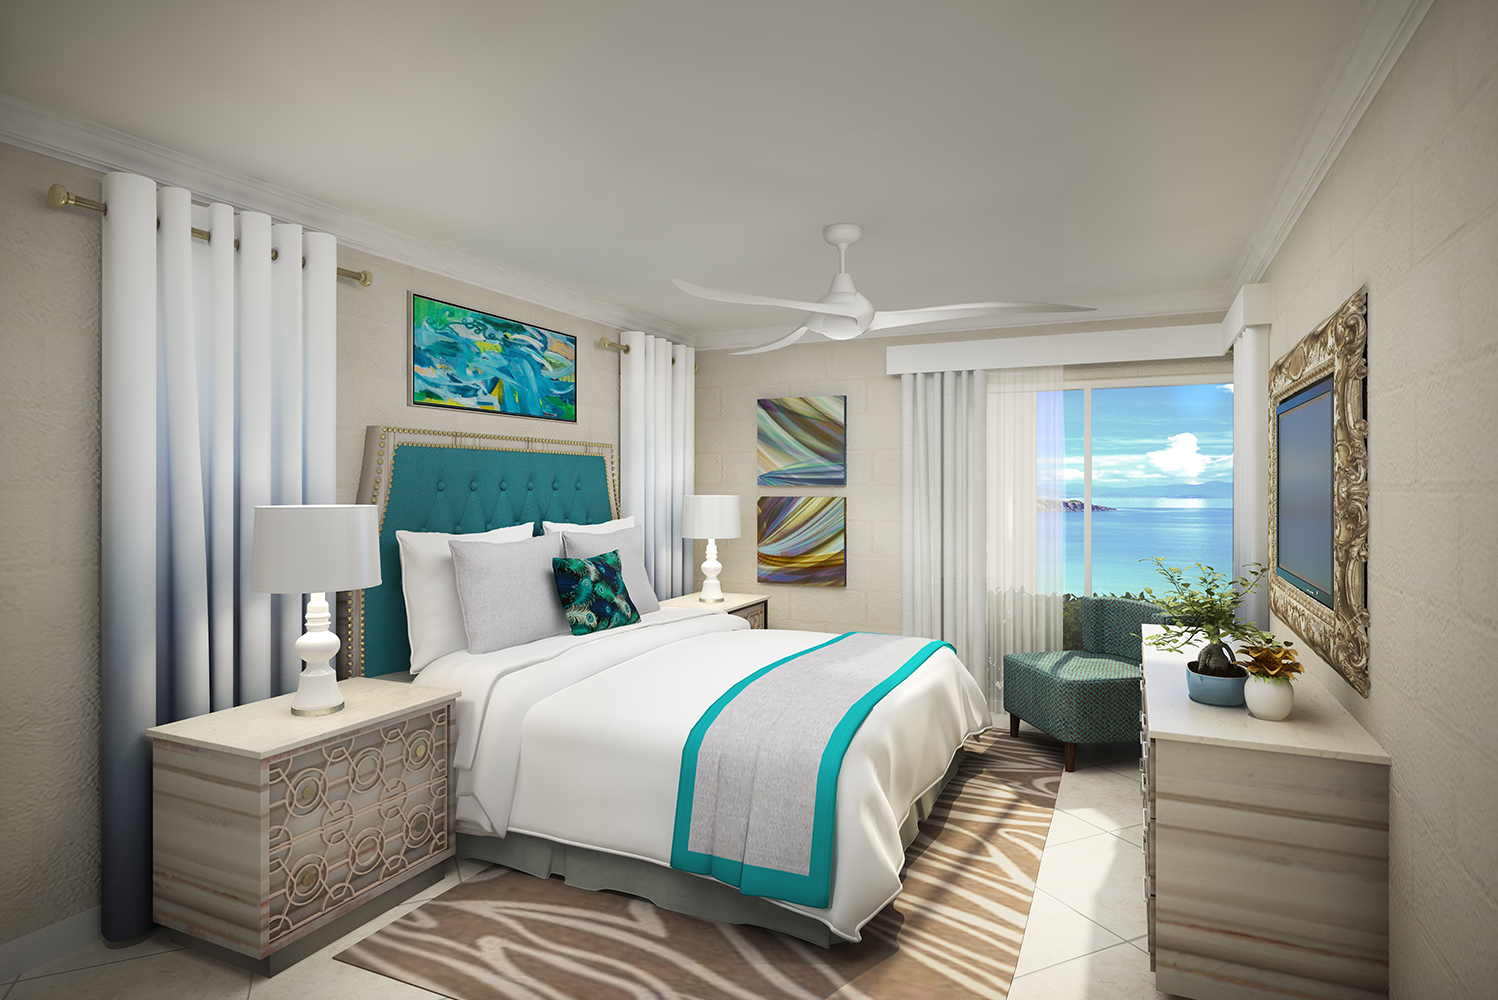 Elegant Hotels Group opened Treasure Beach following a $10.5 million renovation.